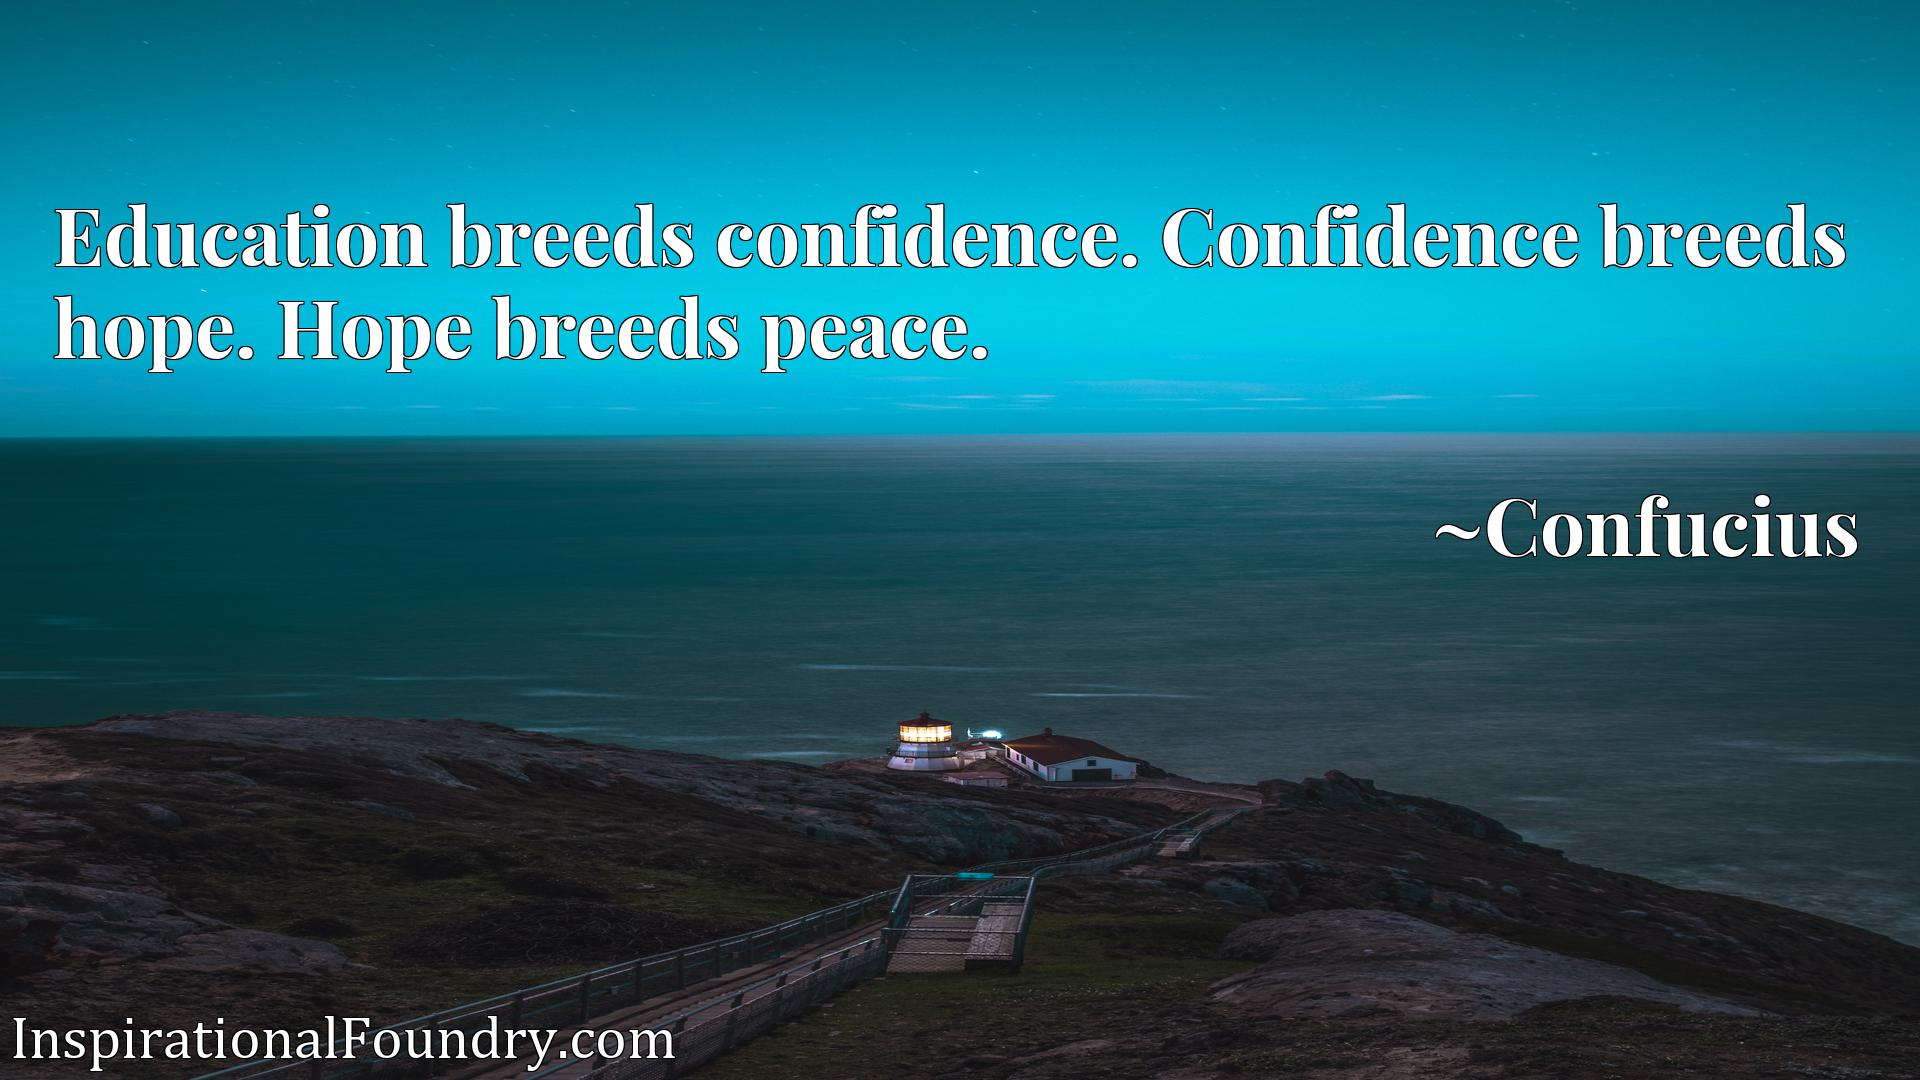 Education breeds confidence. Confidence breeds hope. Hope breeds peace.